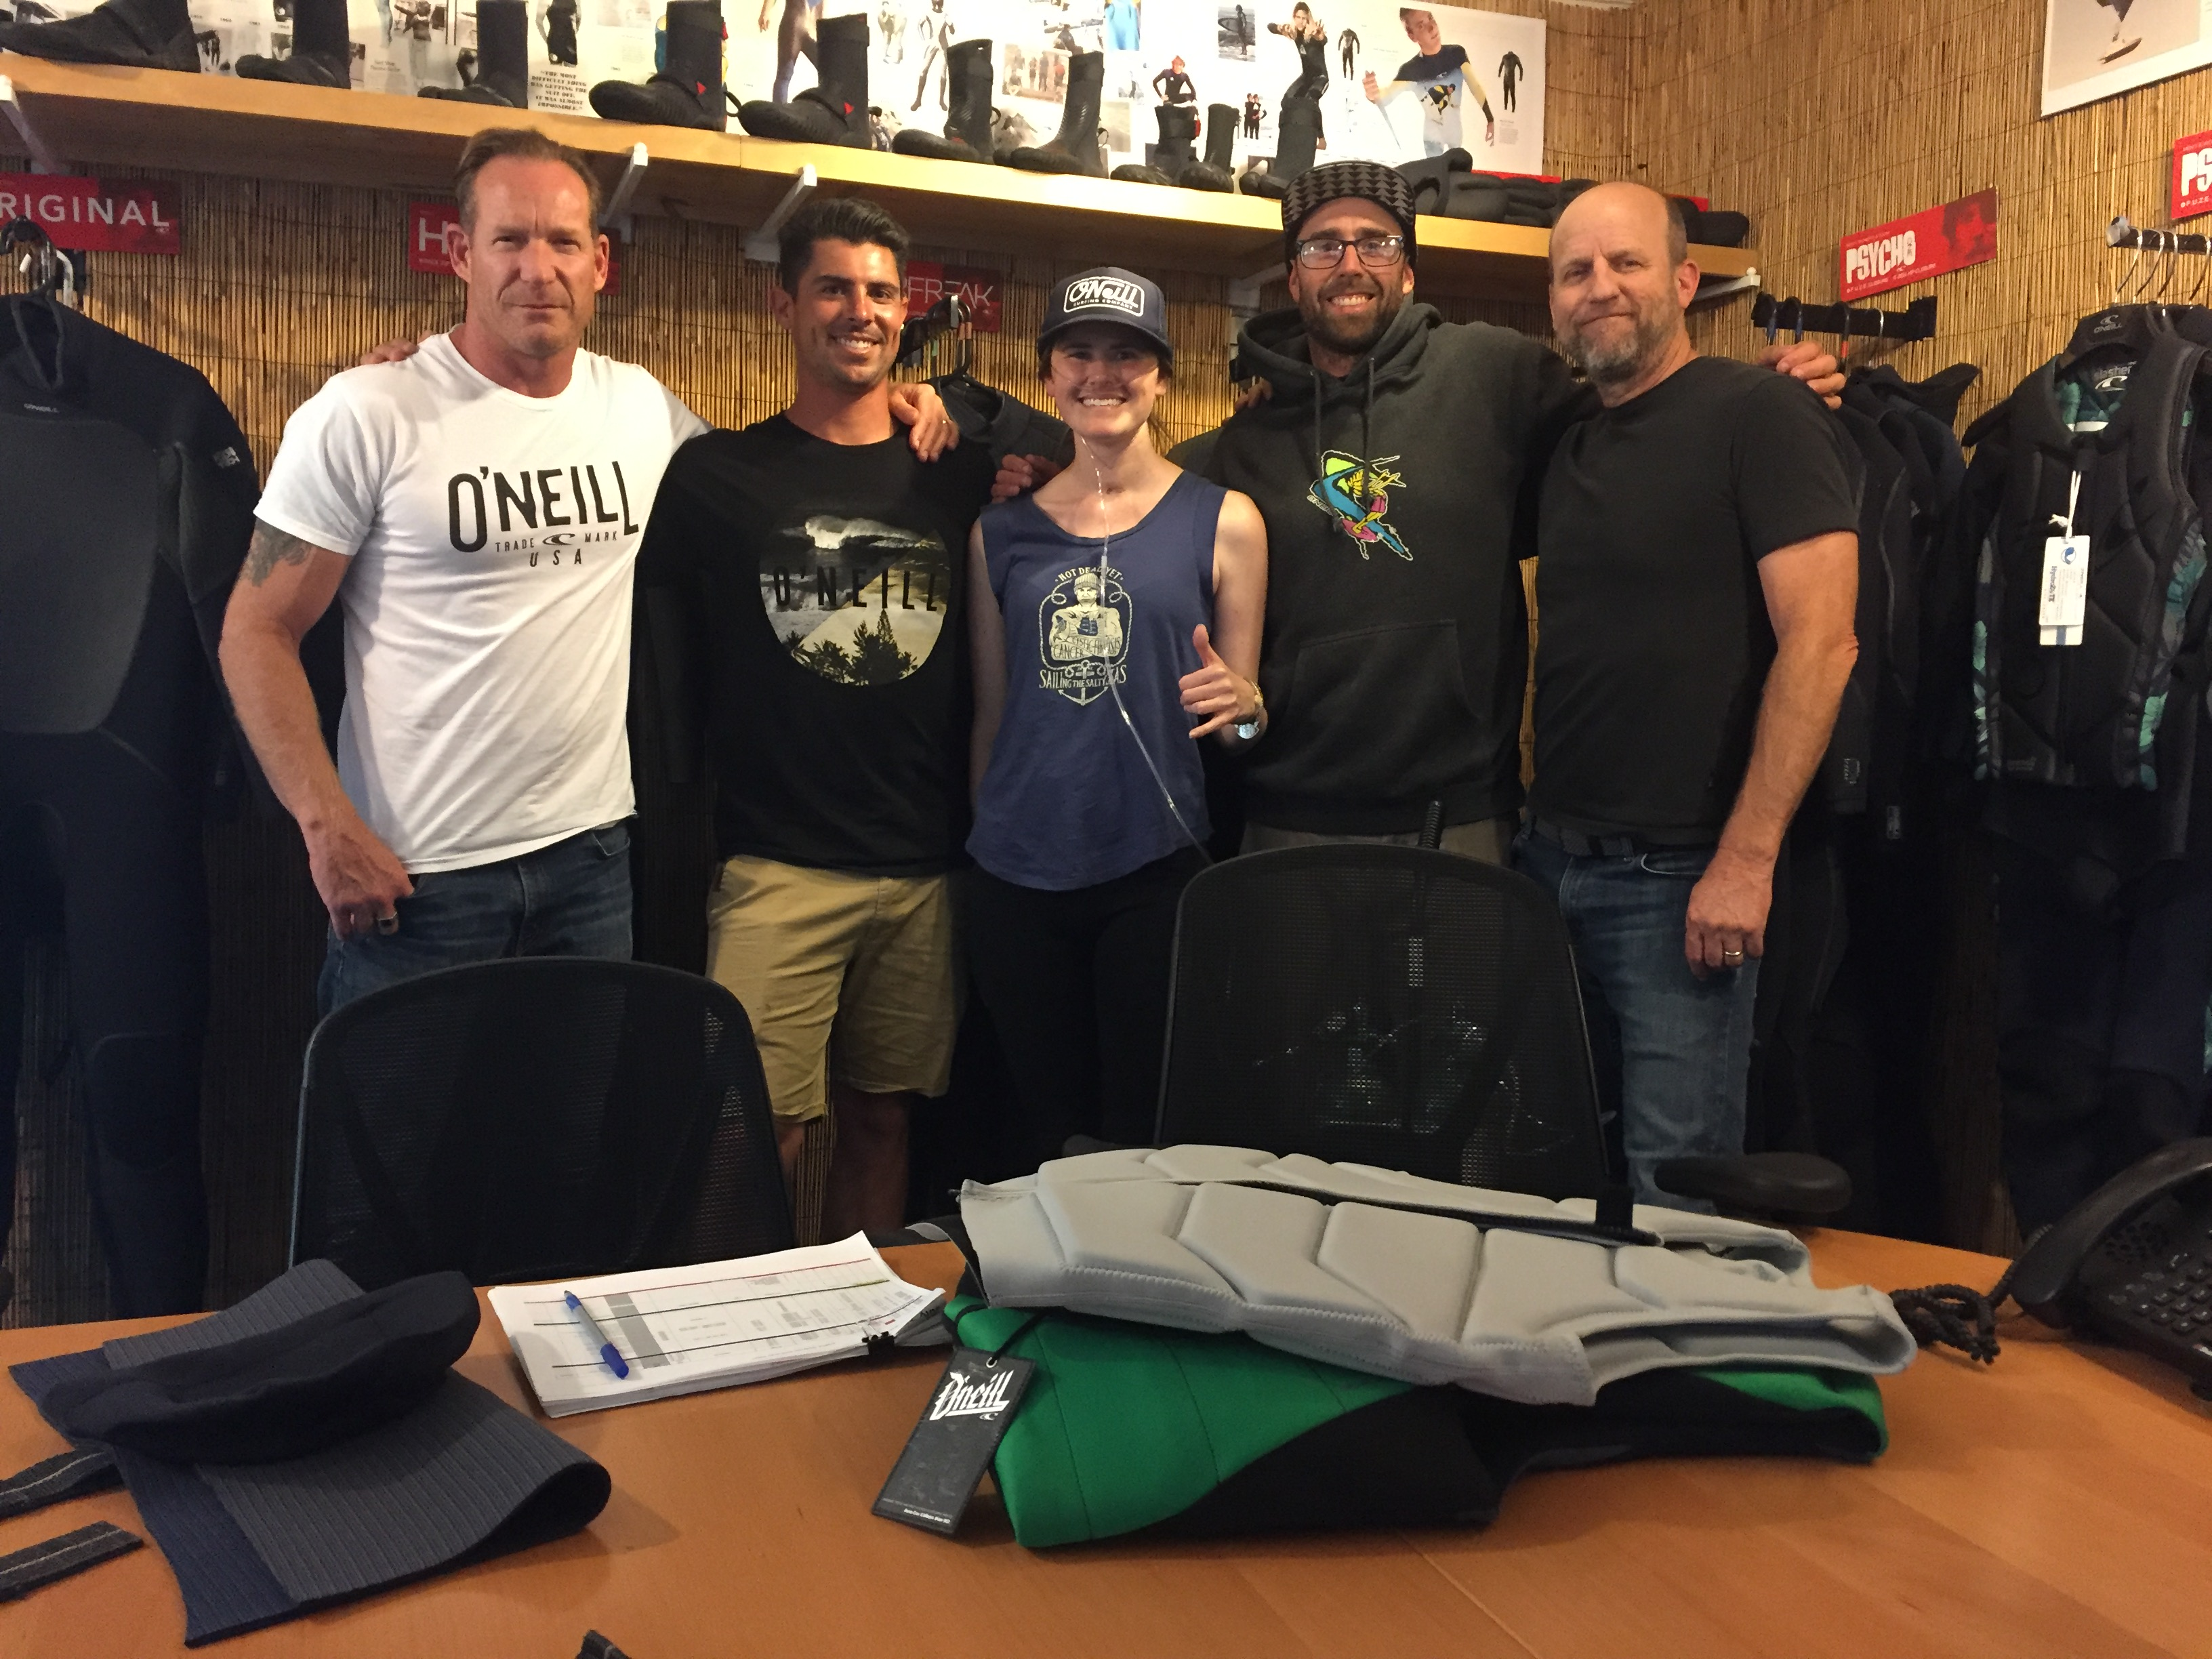 Meeting with O'Neill Wetsuits